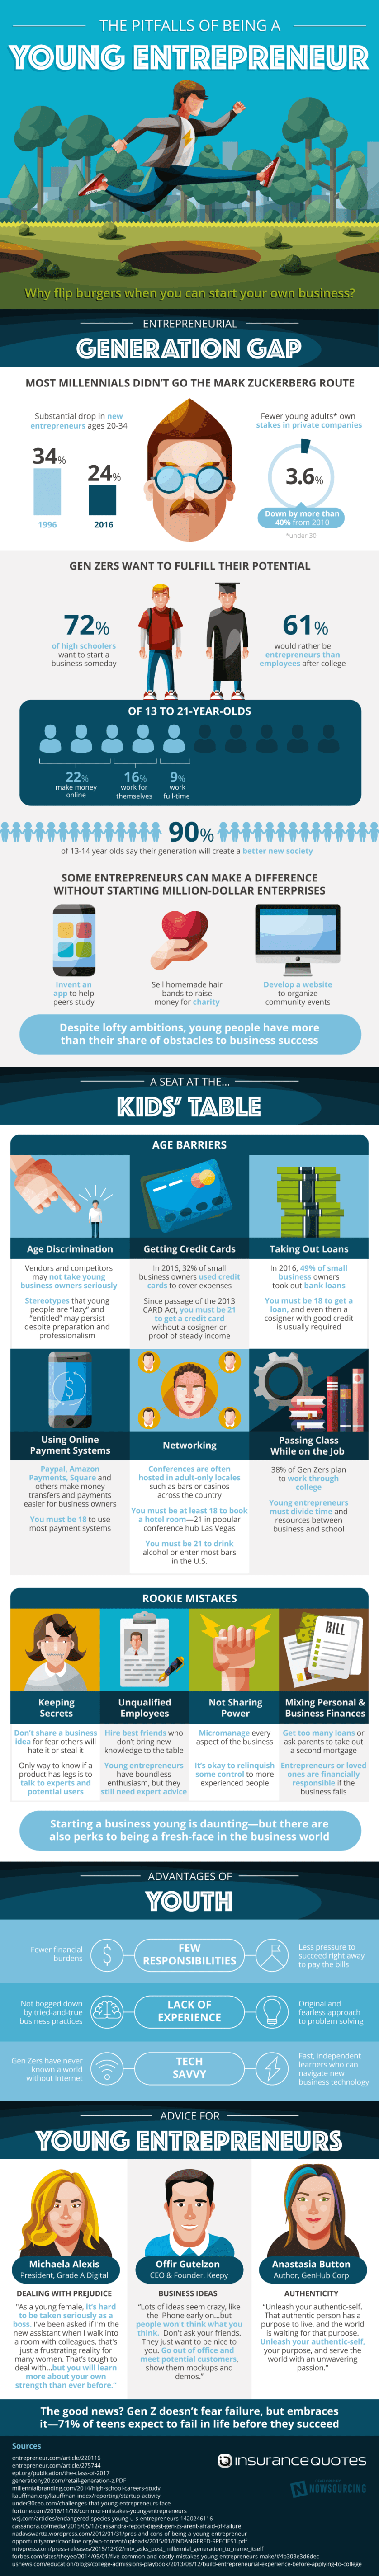 Avoiding pitfalls as a young entrepreneur [Infographic]